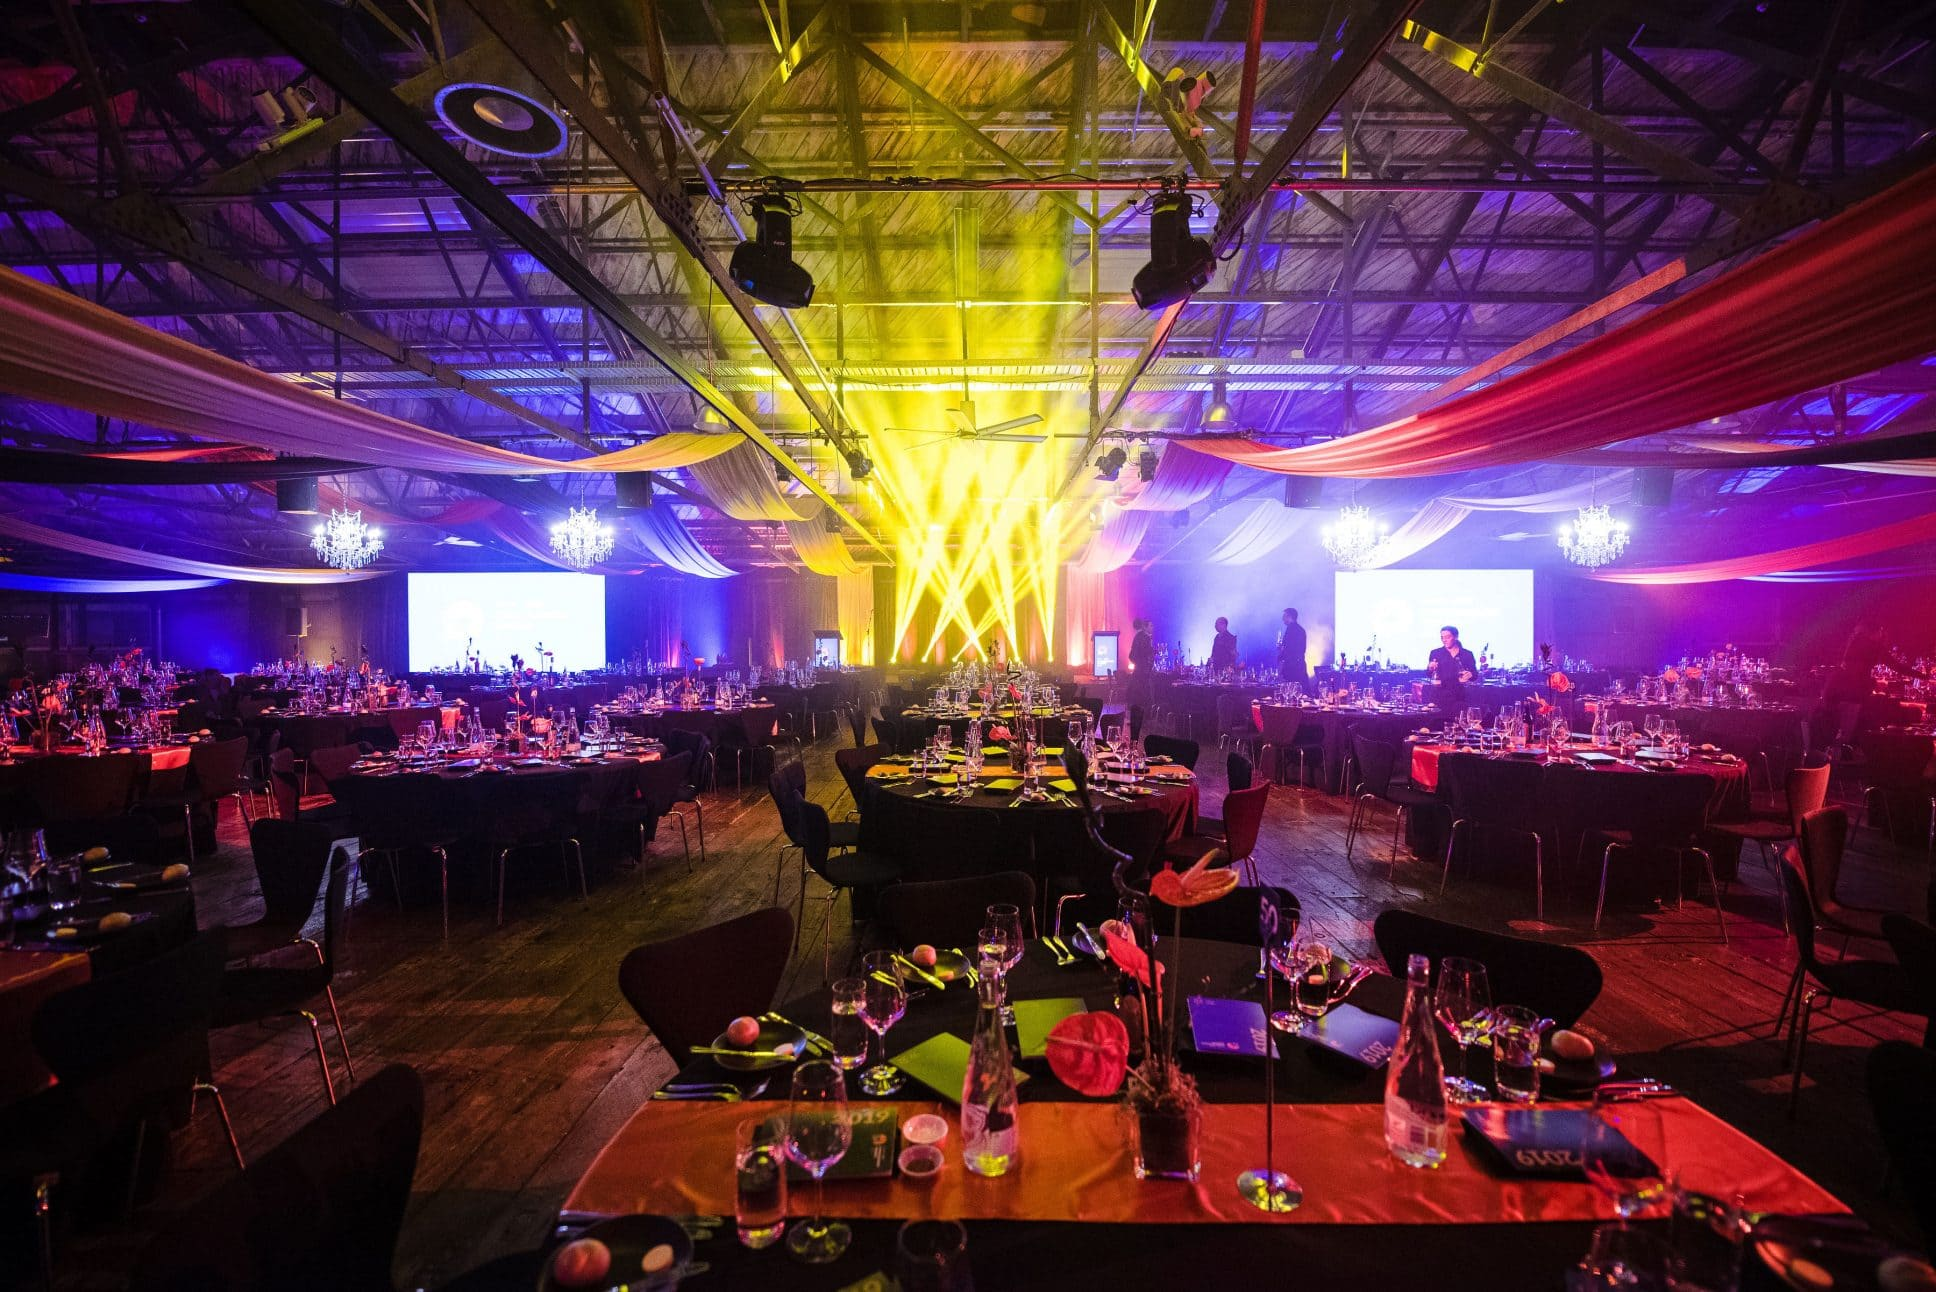 Gala-dinner event at Shed 10 Auckland.